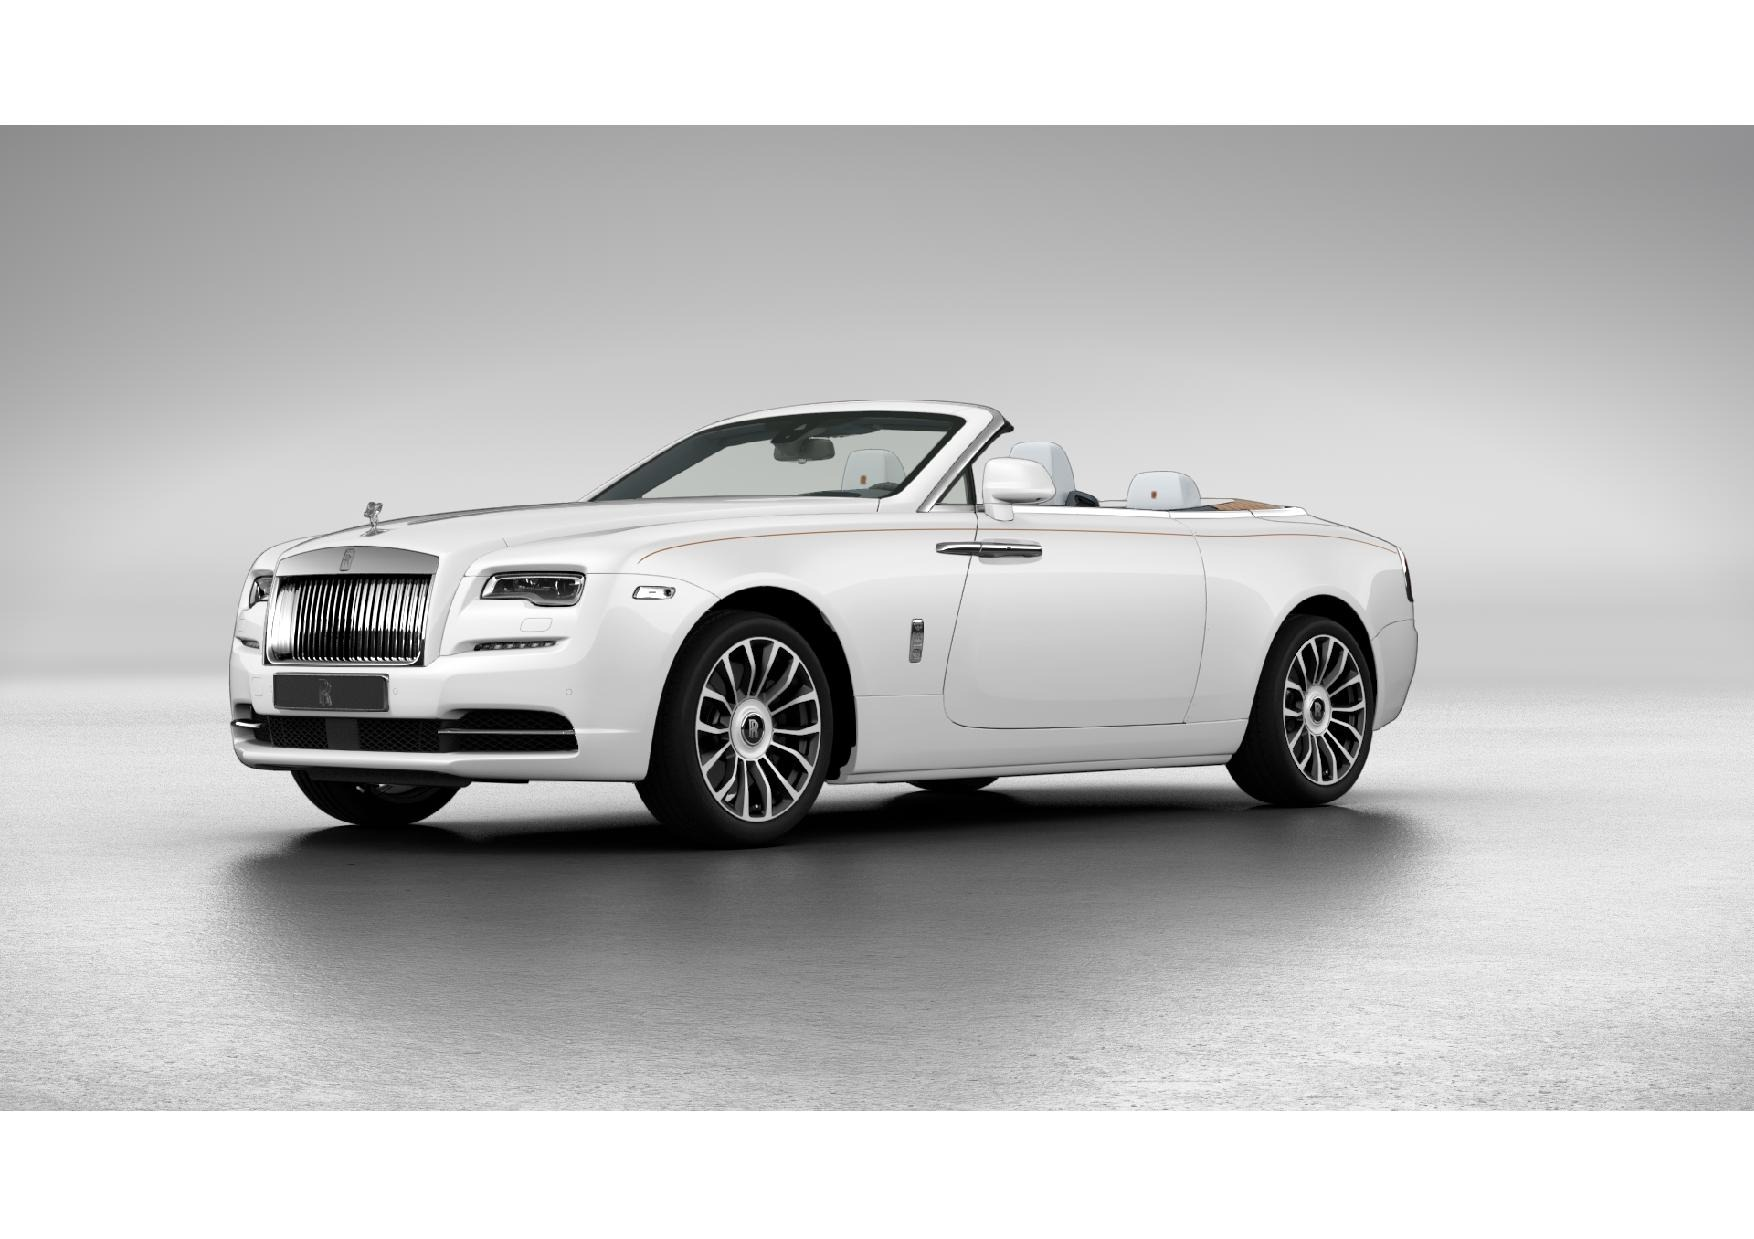 New 2021 Rolls-Royce Dawn for sale Sold at Bentley Greenwich in Greenwich CT 06830 1